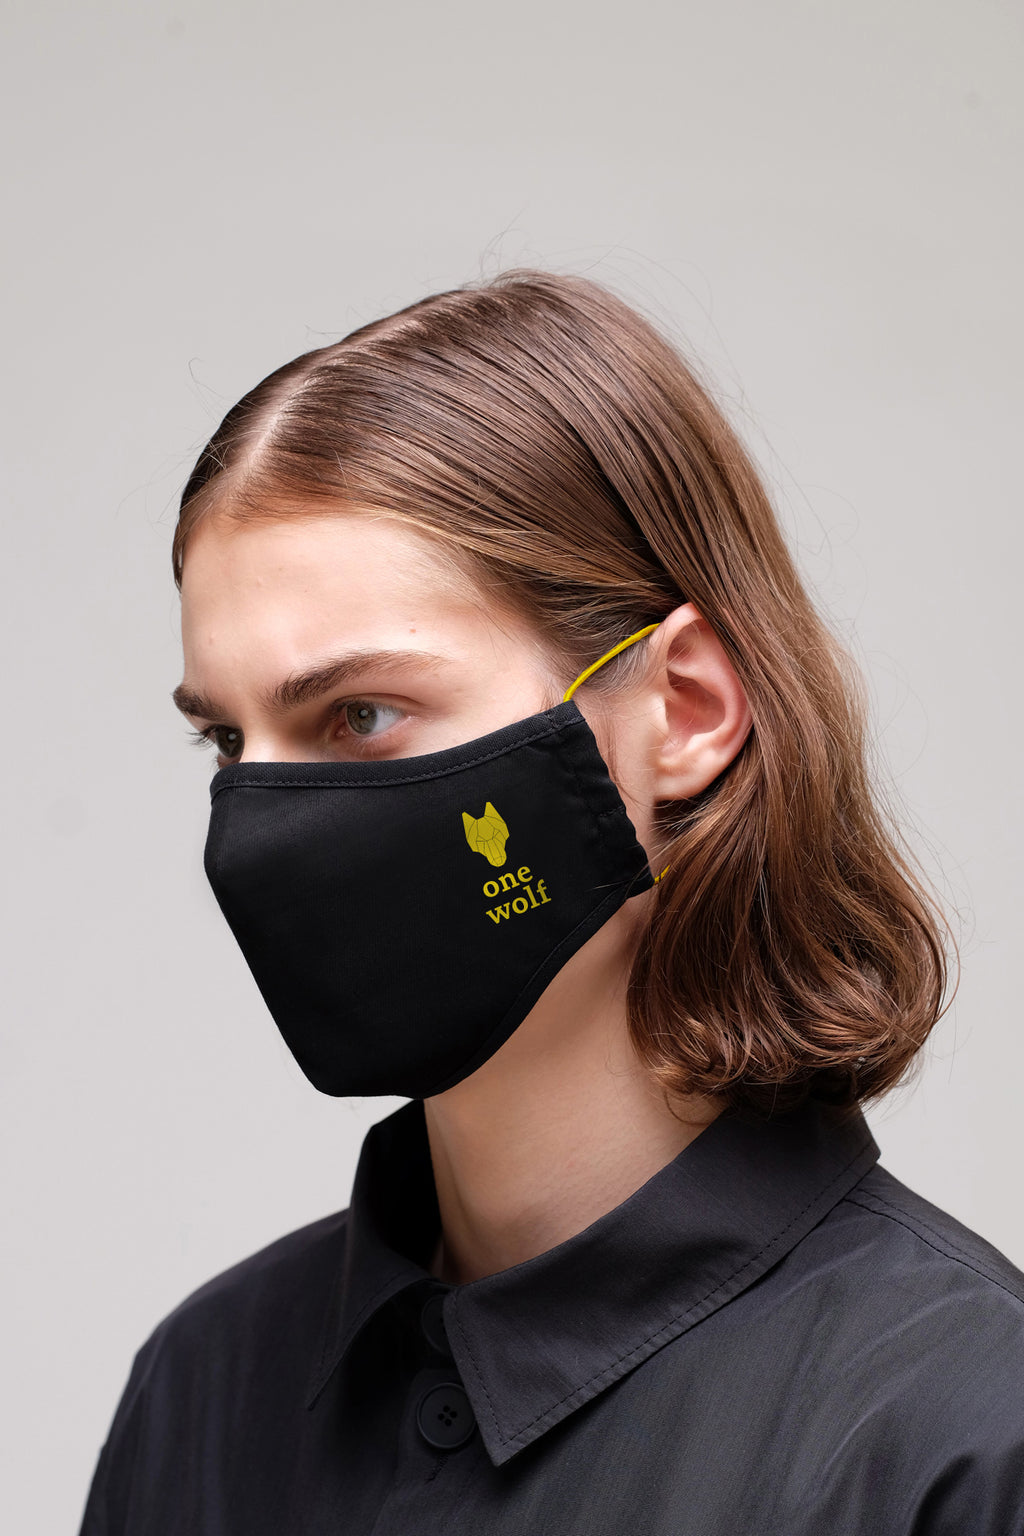 OUTSIDER LOGO face-wear mask